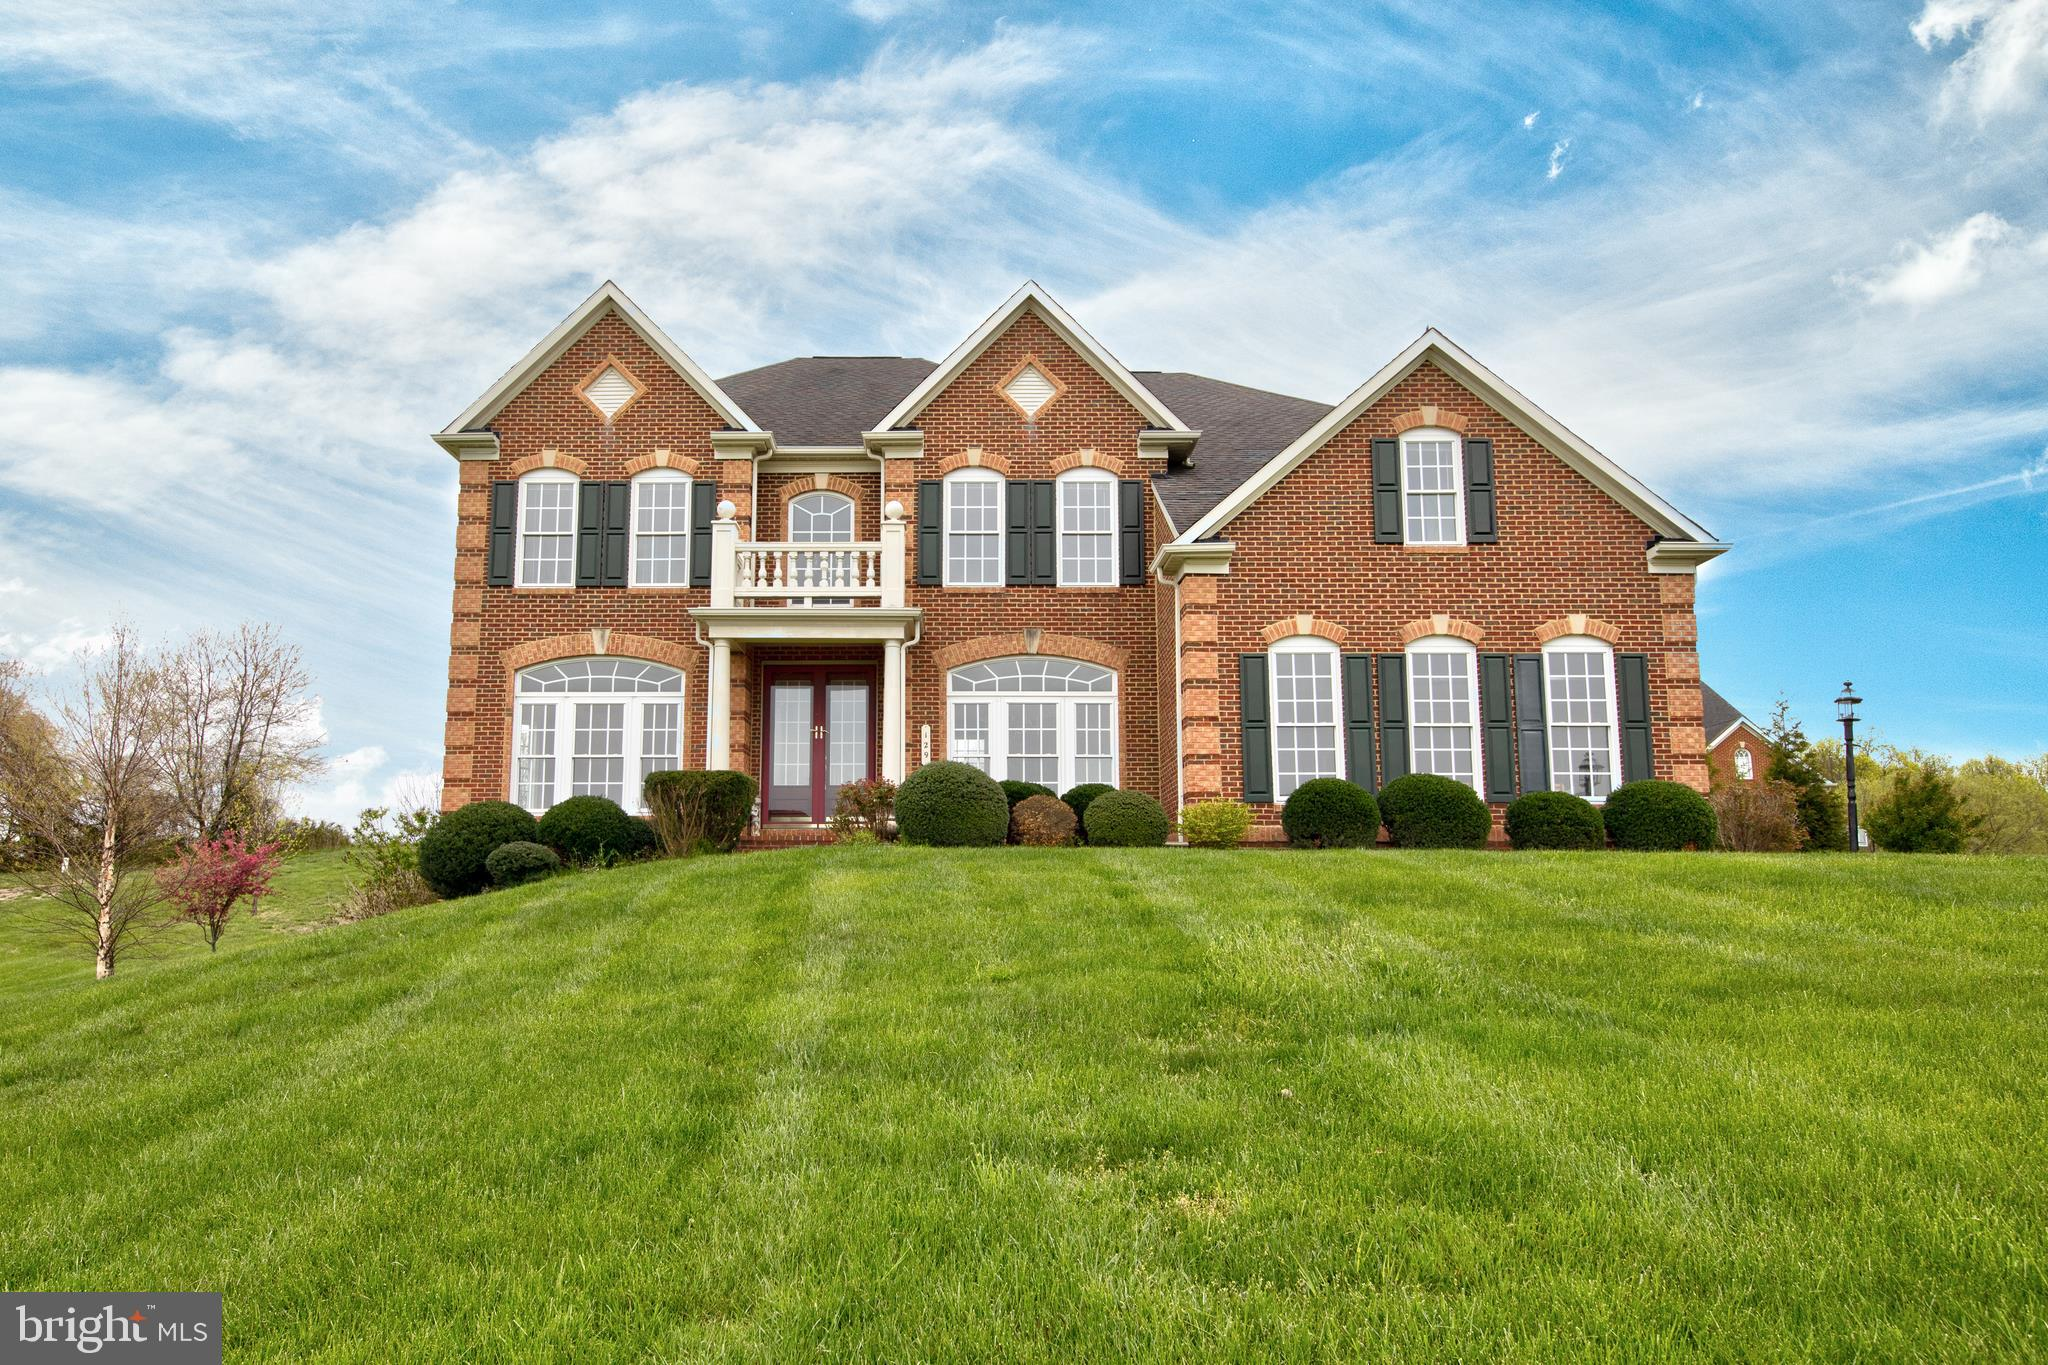 129 Bower Lane, Forest Hill, MD 21050